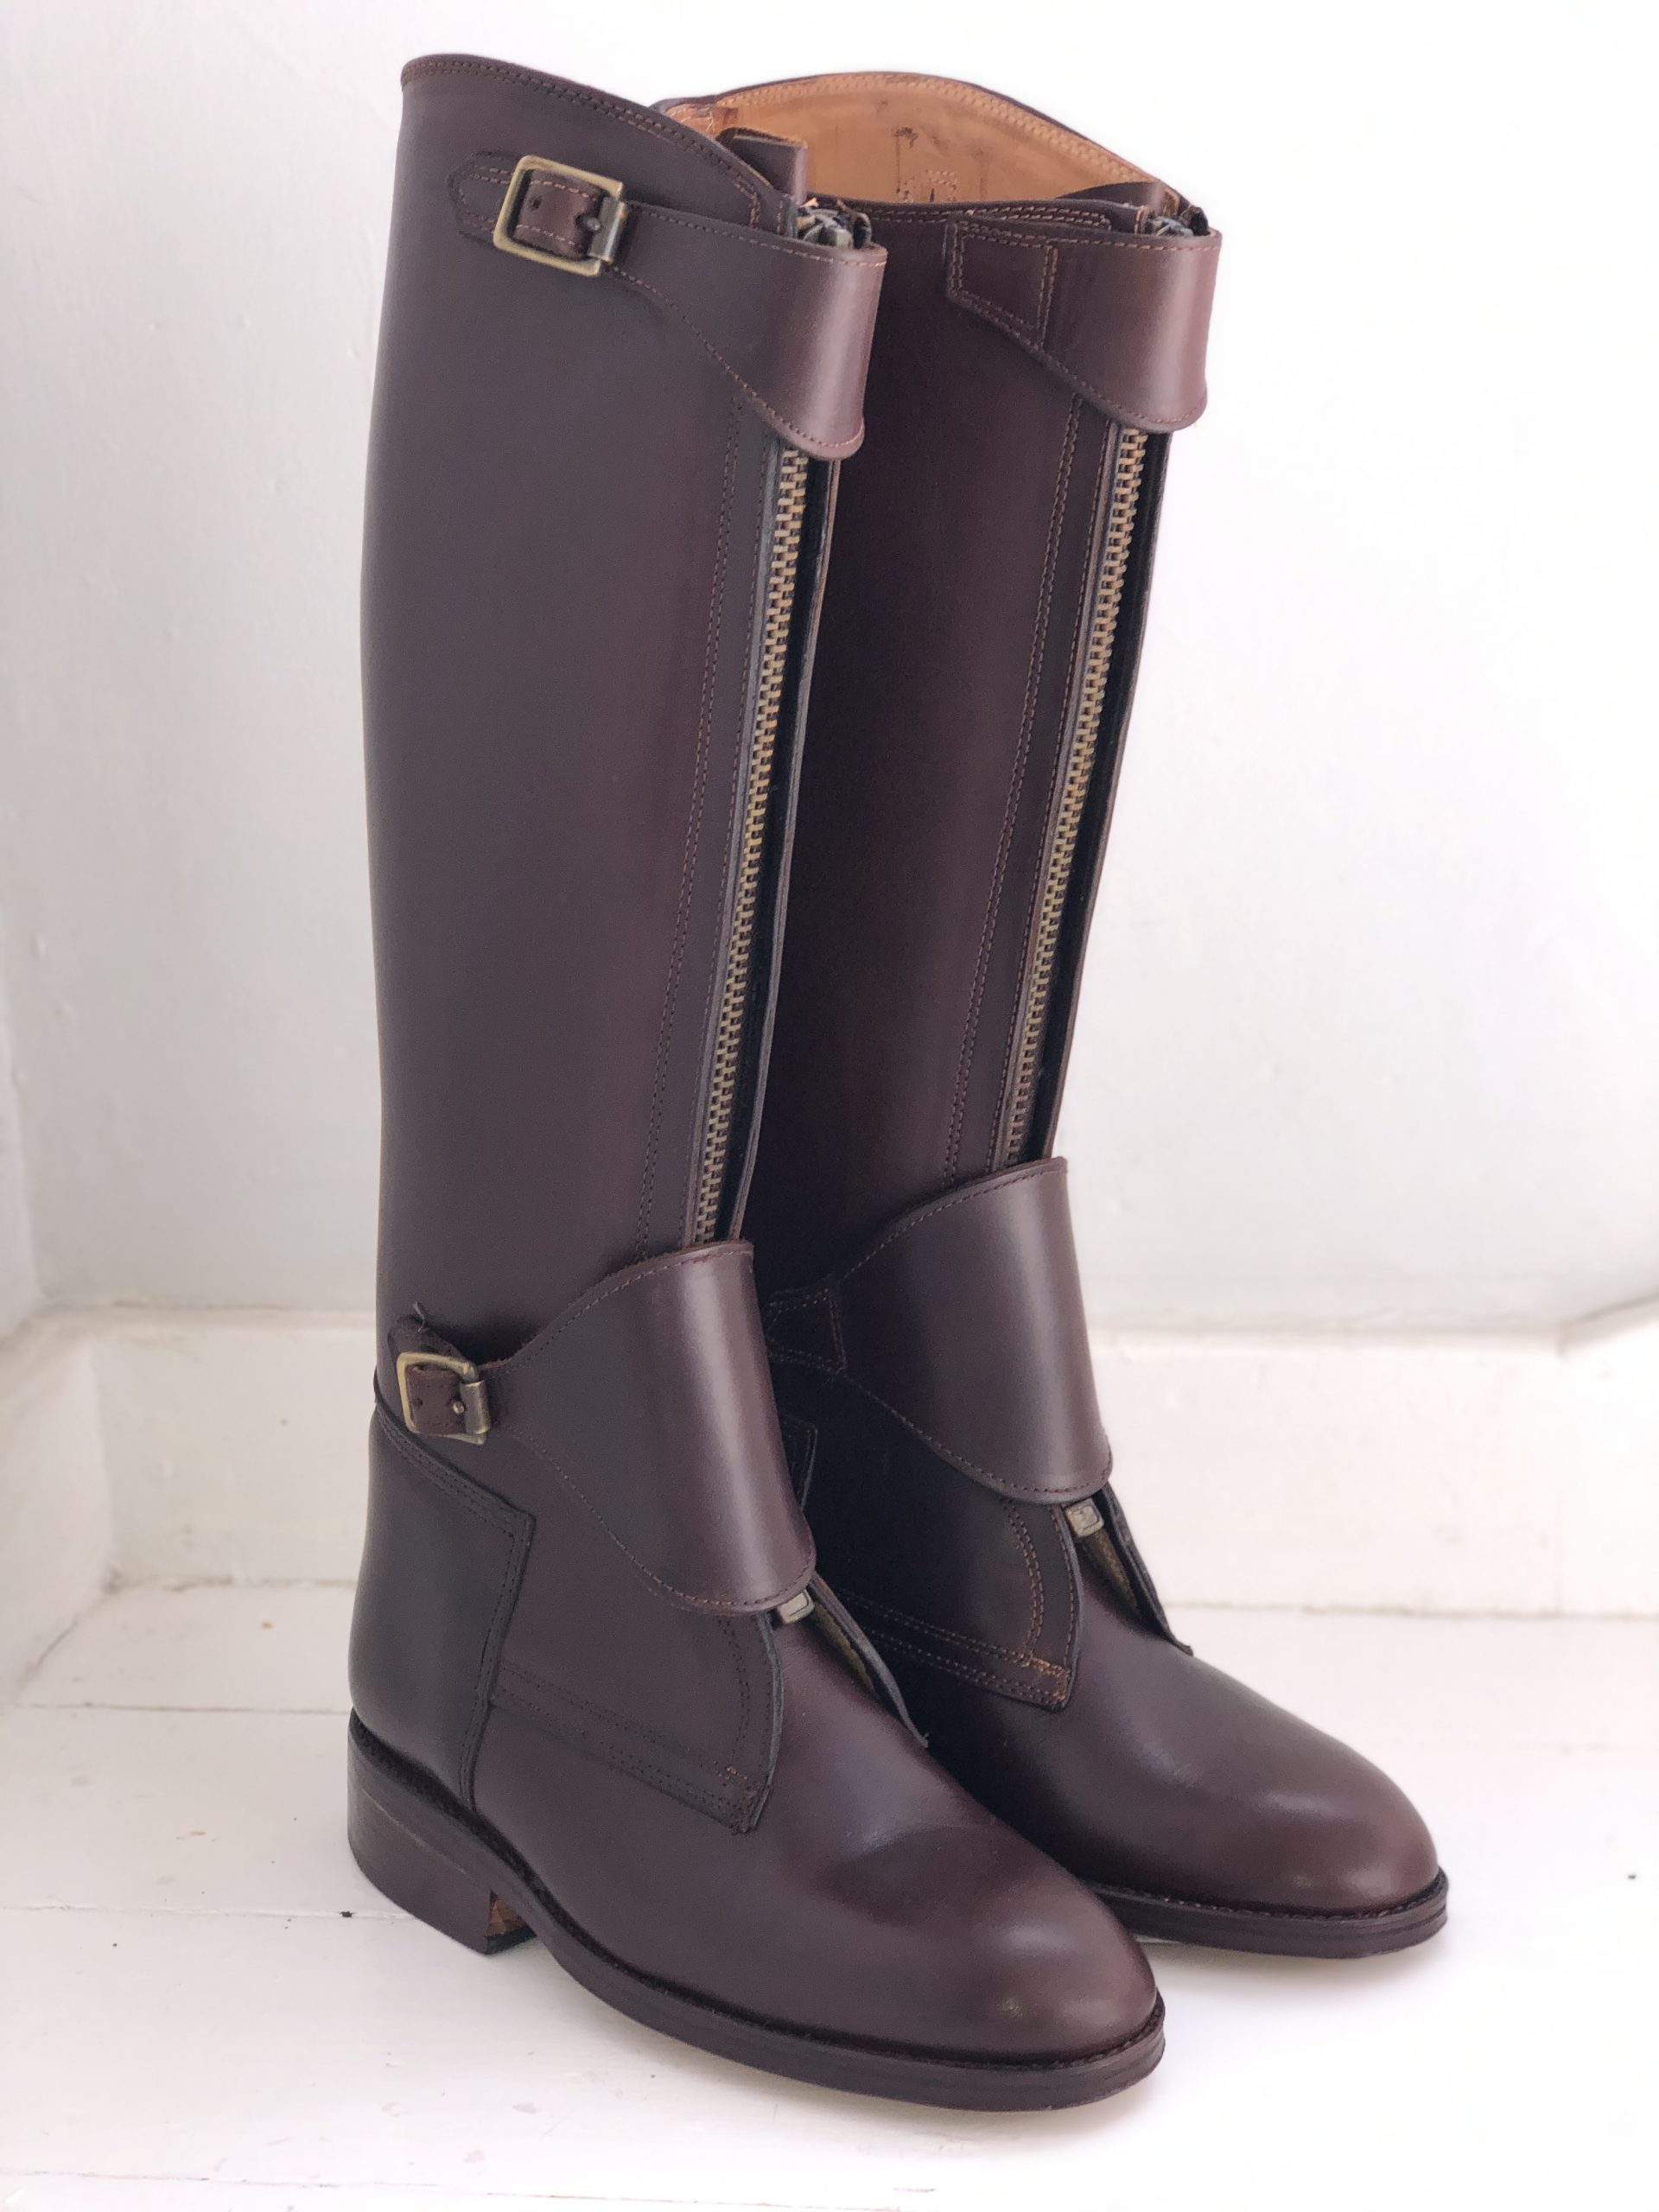 Argentine Polo Boots with zips